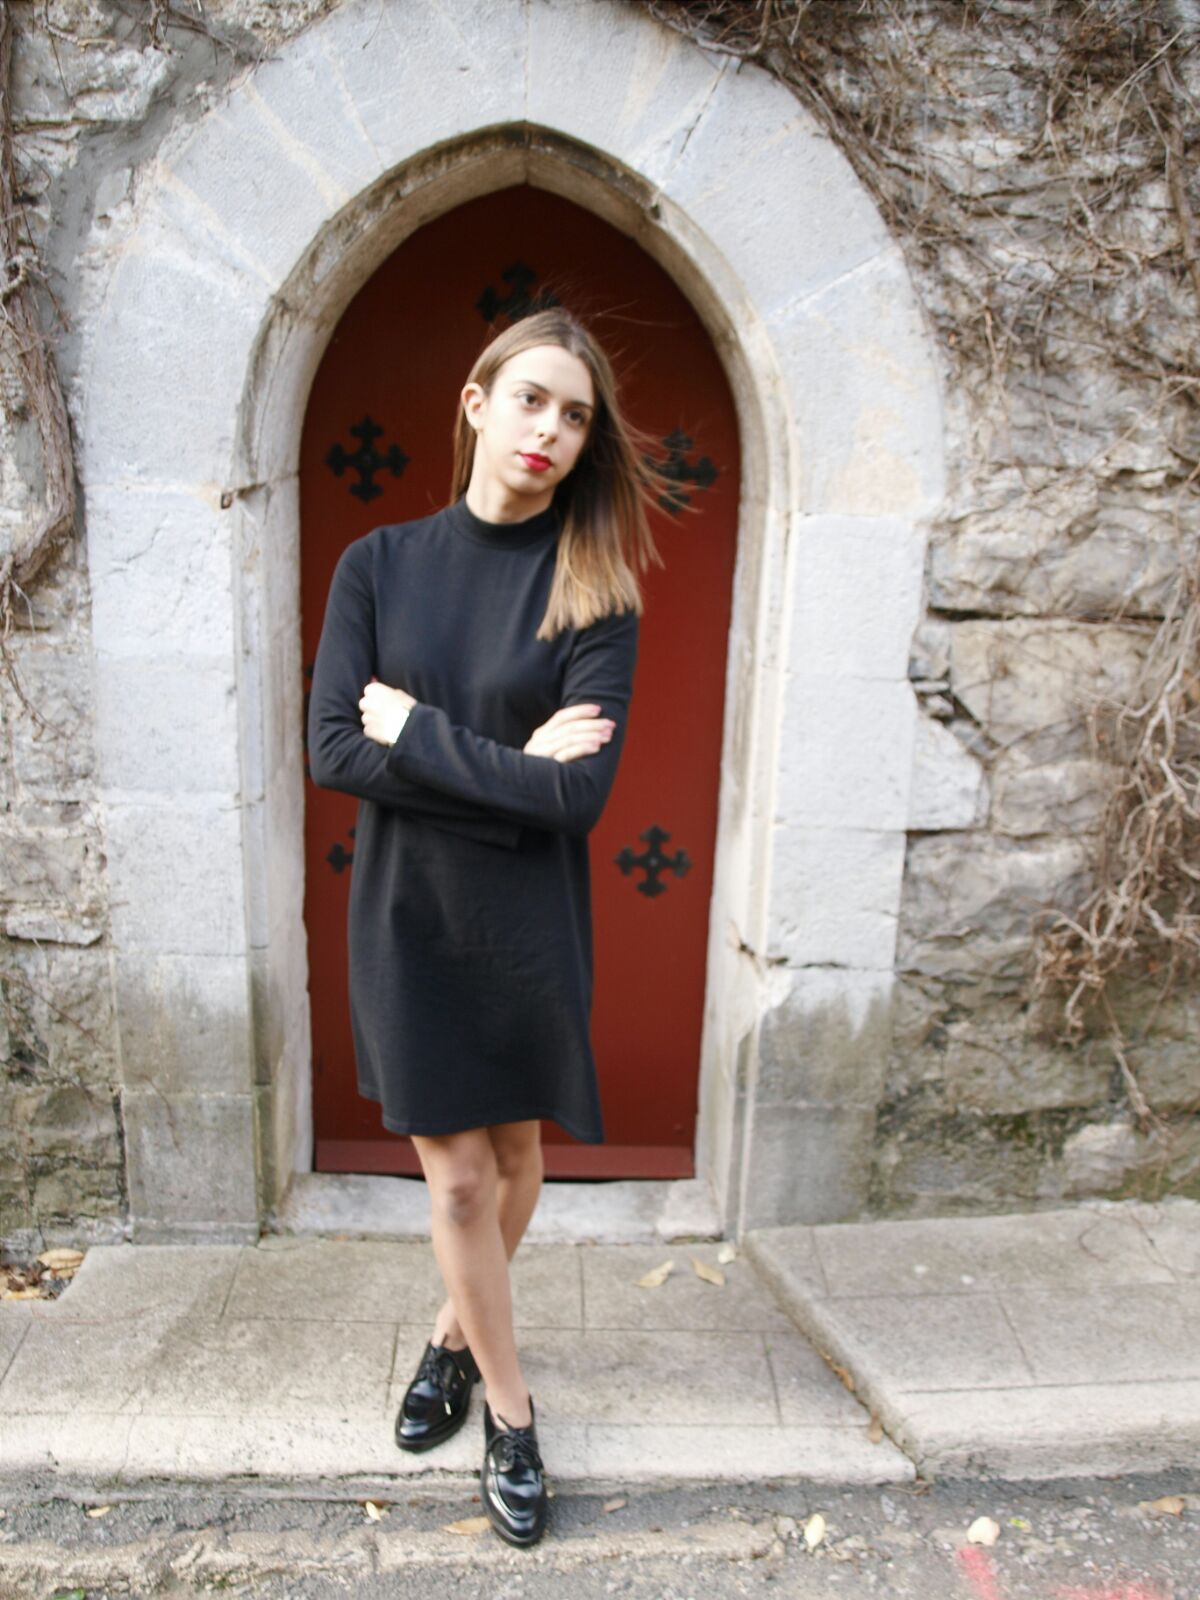 coastalandco-hendaye-blog-blogger-black-dress-robe-noir-vestido-negro-fashion-mode-moda-hat-derbies-woman-zara